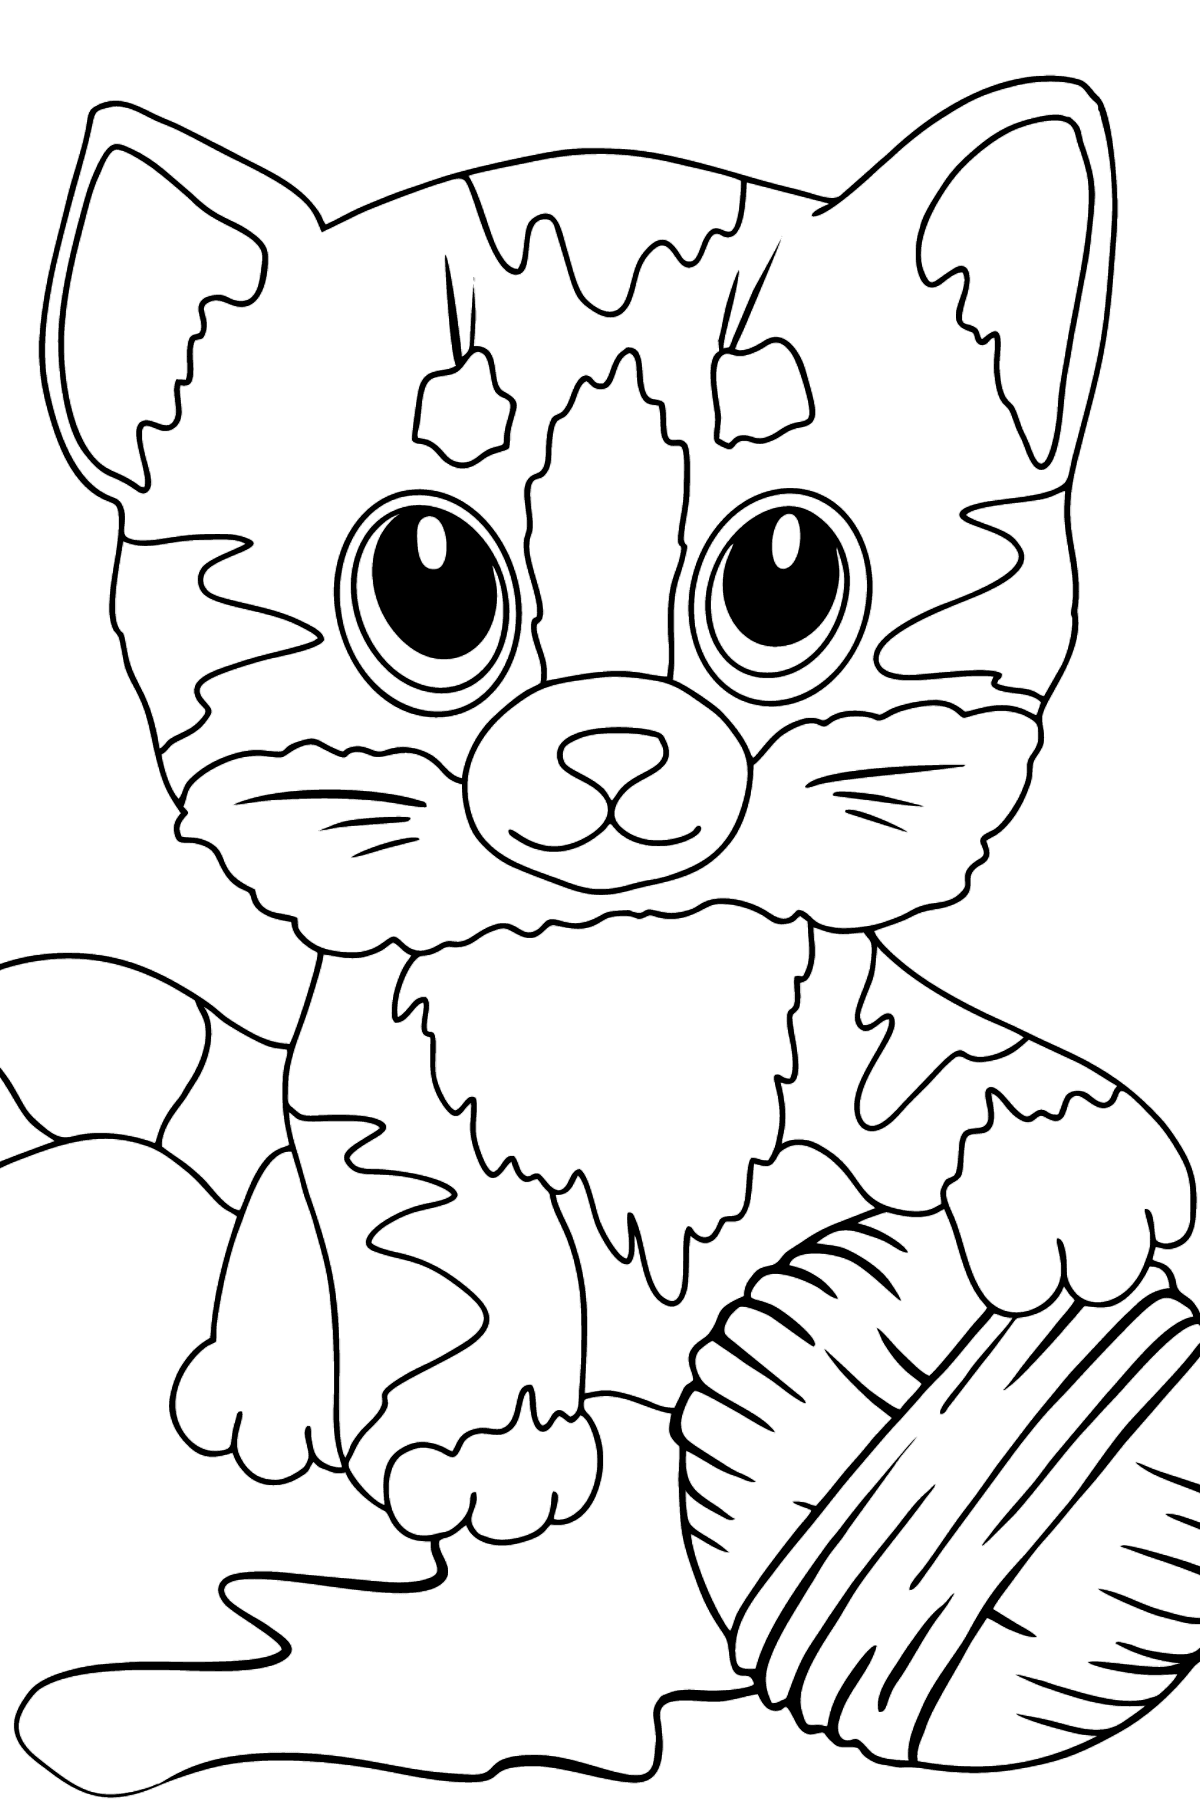 Cute Cat Coloring Page - Coloring Pages for Kids